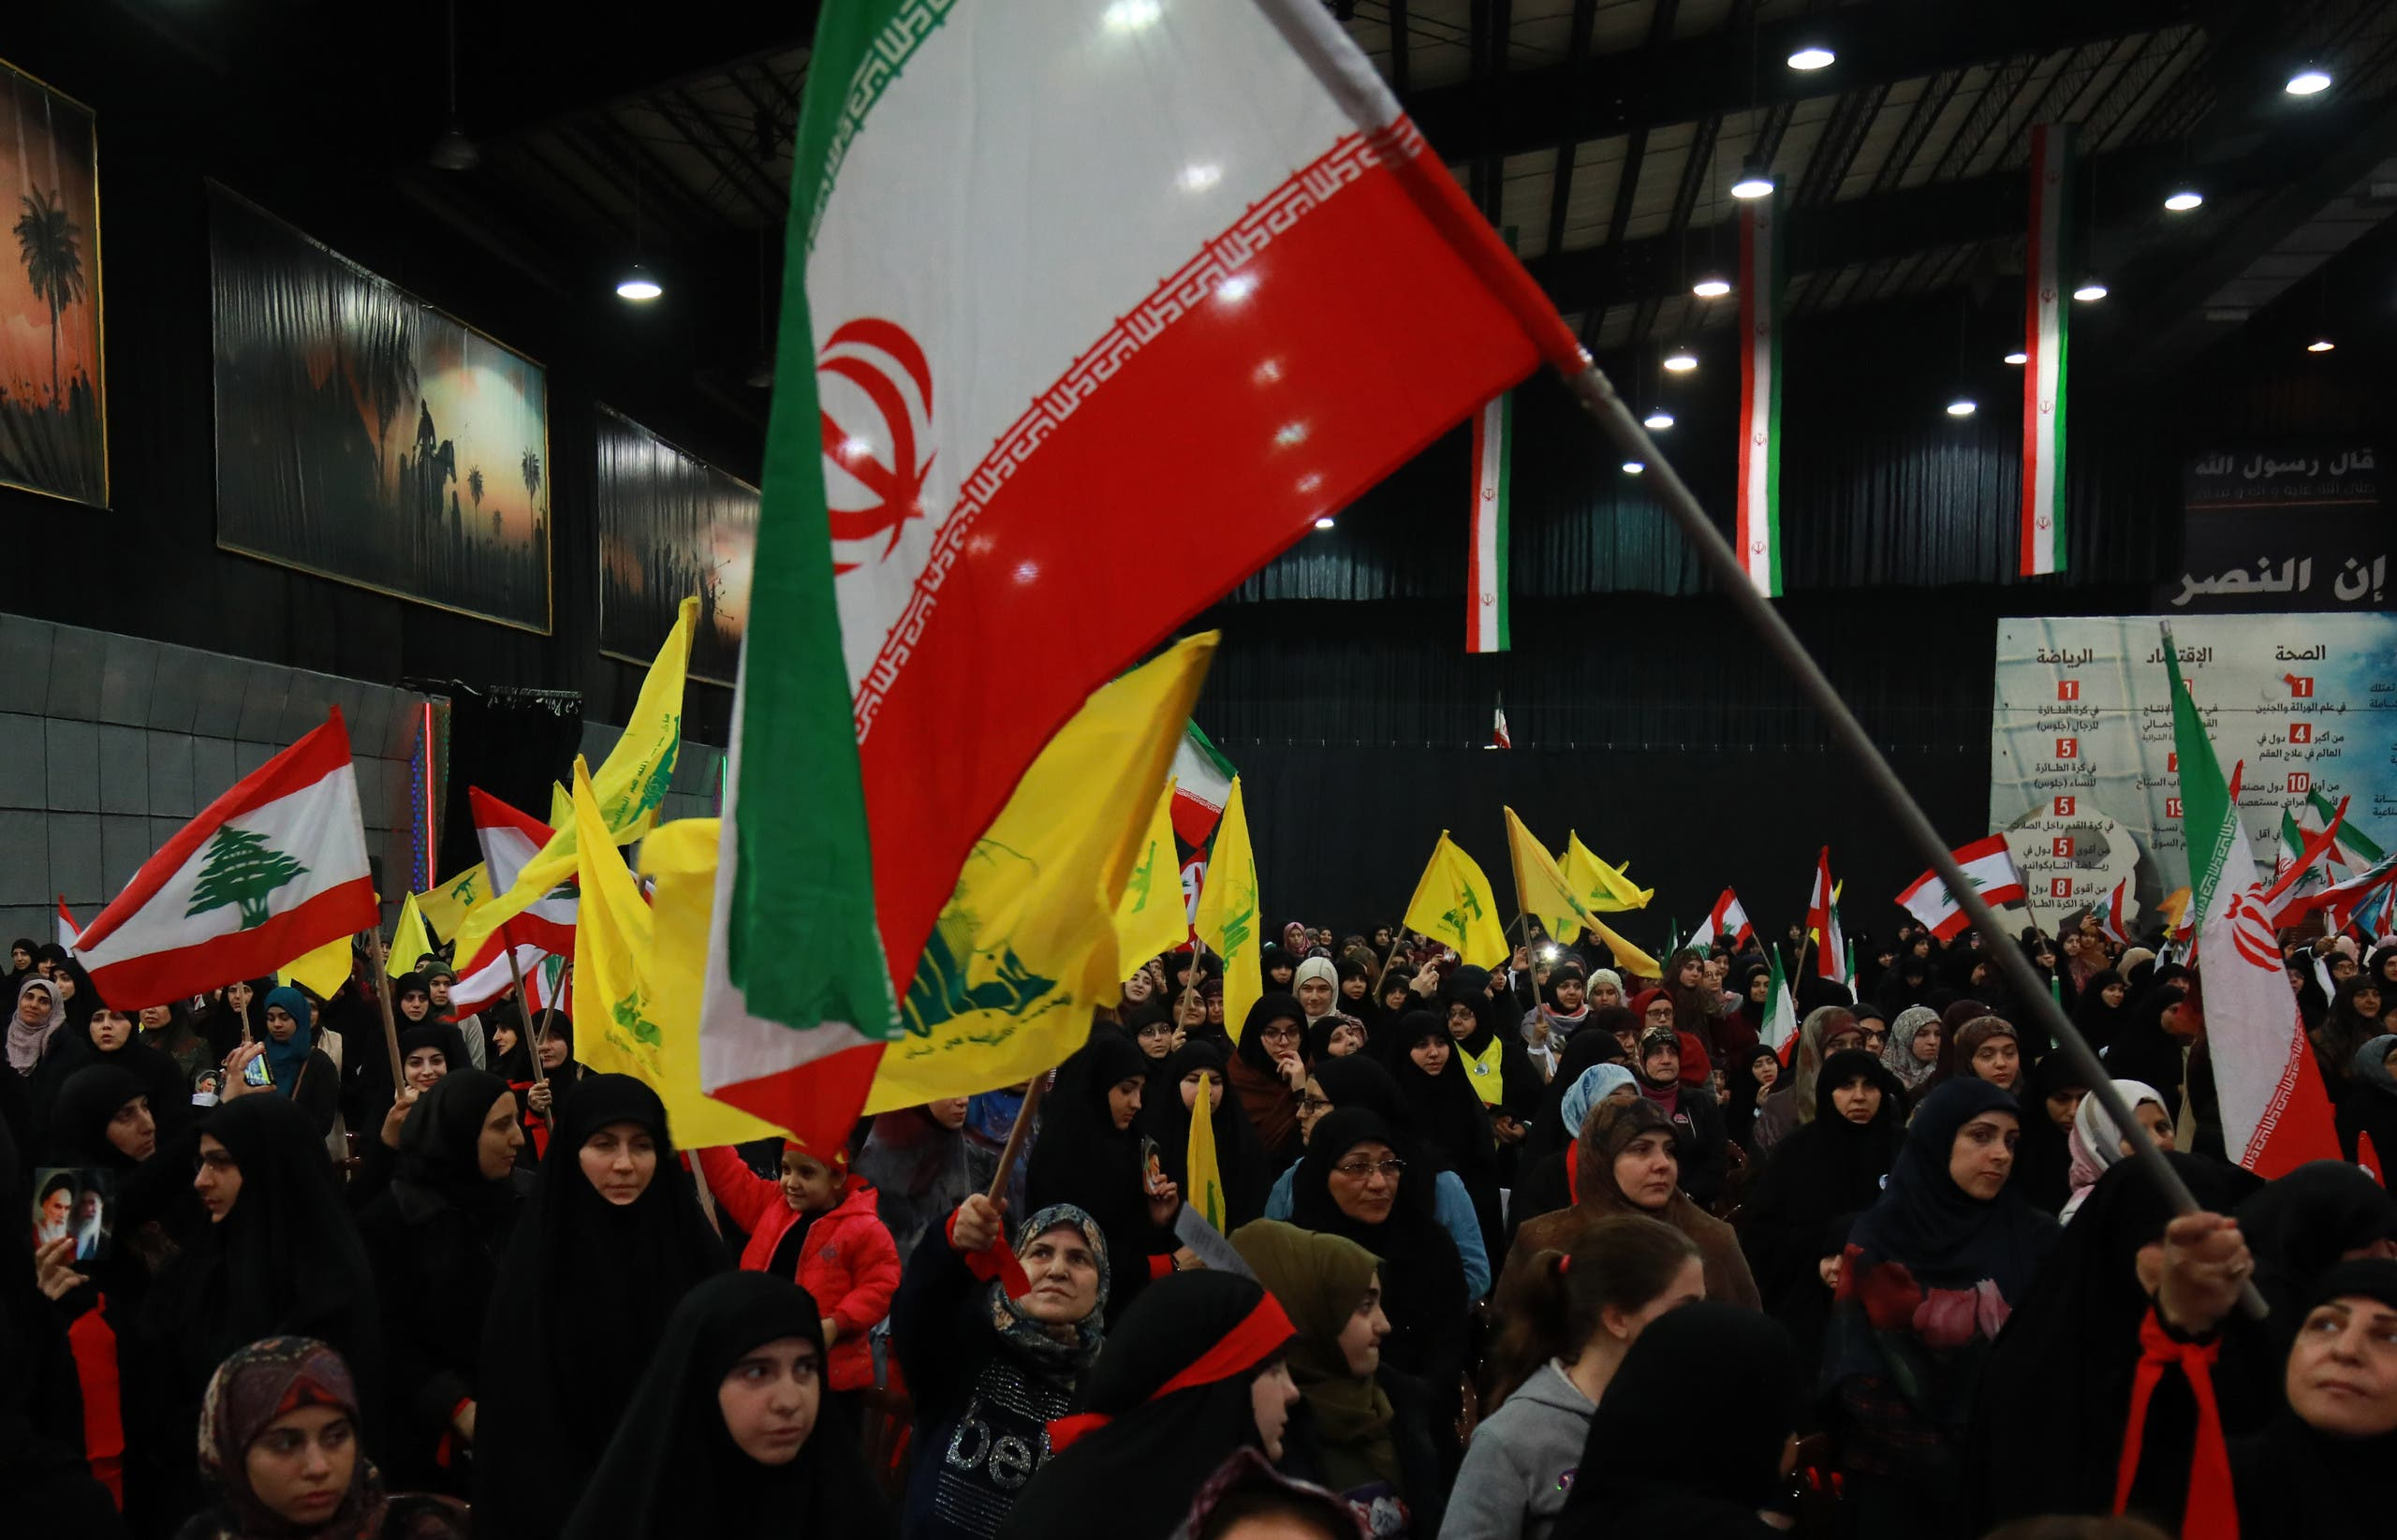 Supporters of Lebanese Hezbollah wave the movement's yellow flag along with Iran's flag during celebrations marking the 40th anniversary of the Iranian revolution in the capital Beirut's southern suburbs on February 6, 2019.